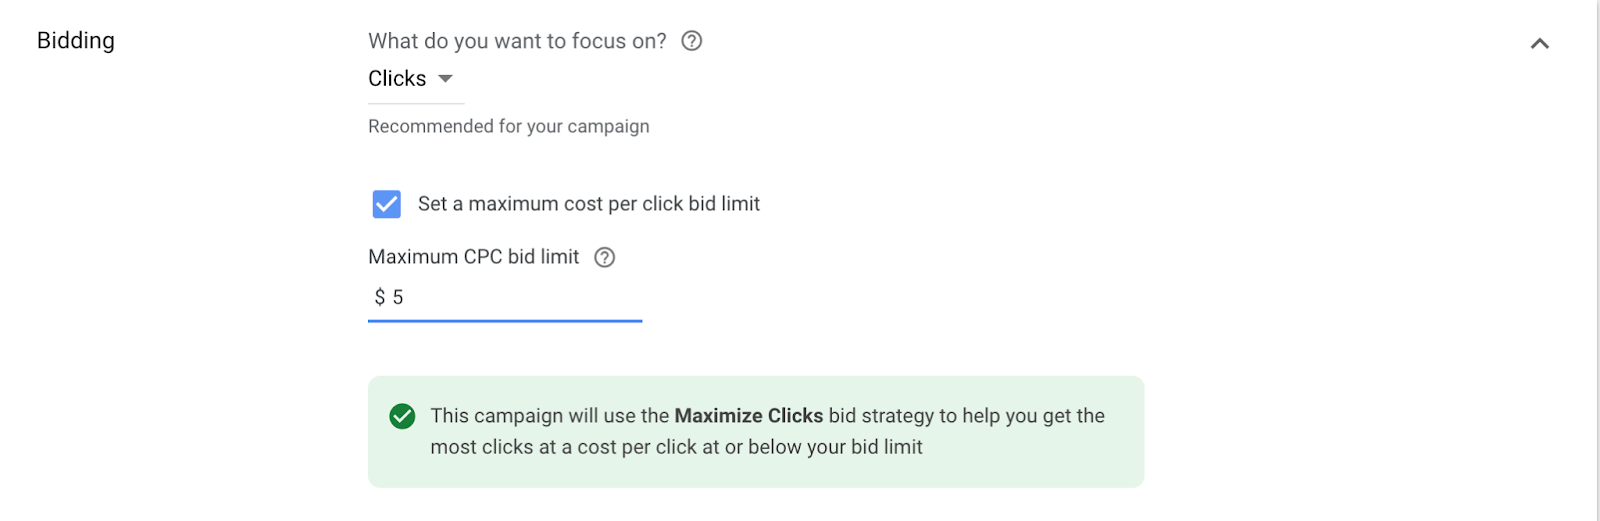 google ads campaign bidding section